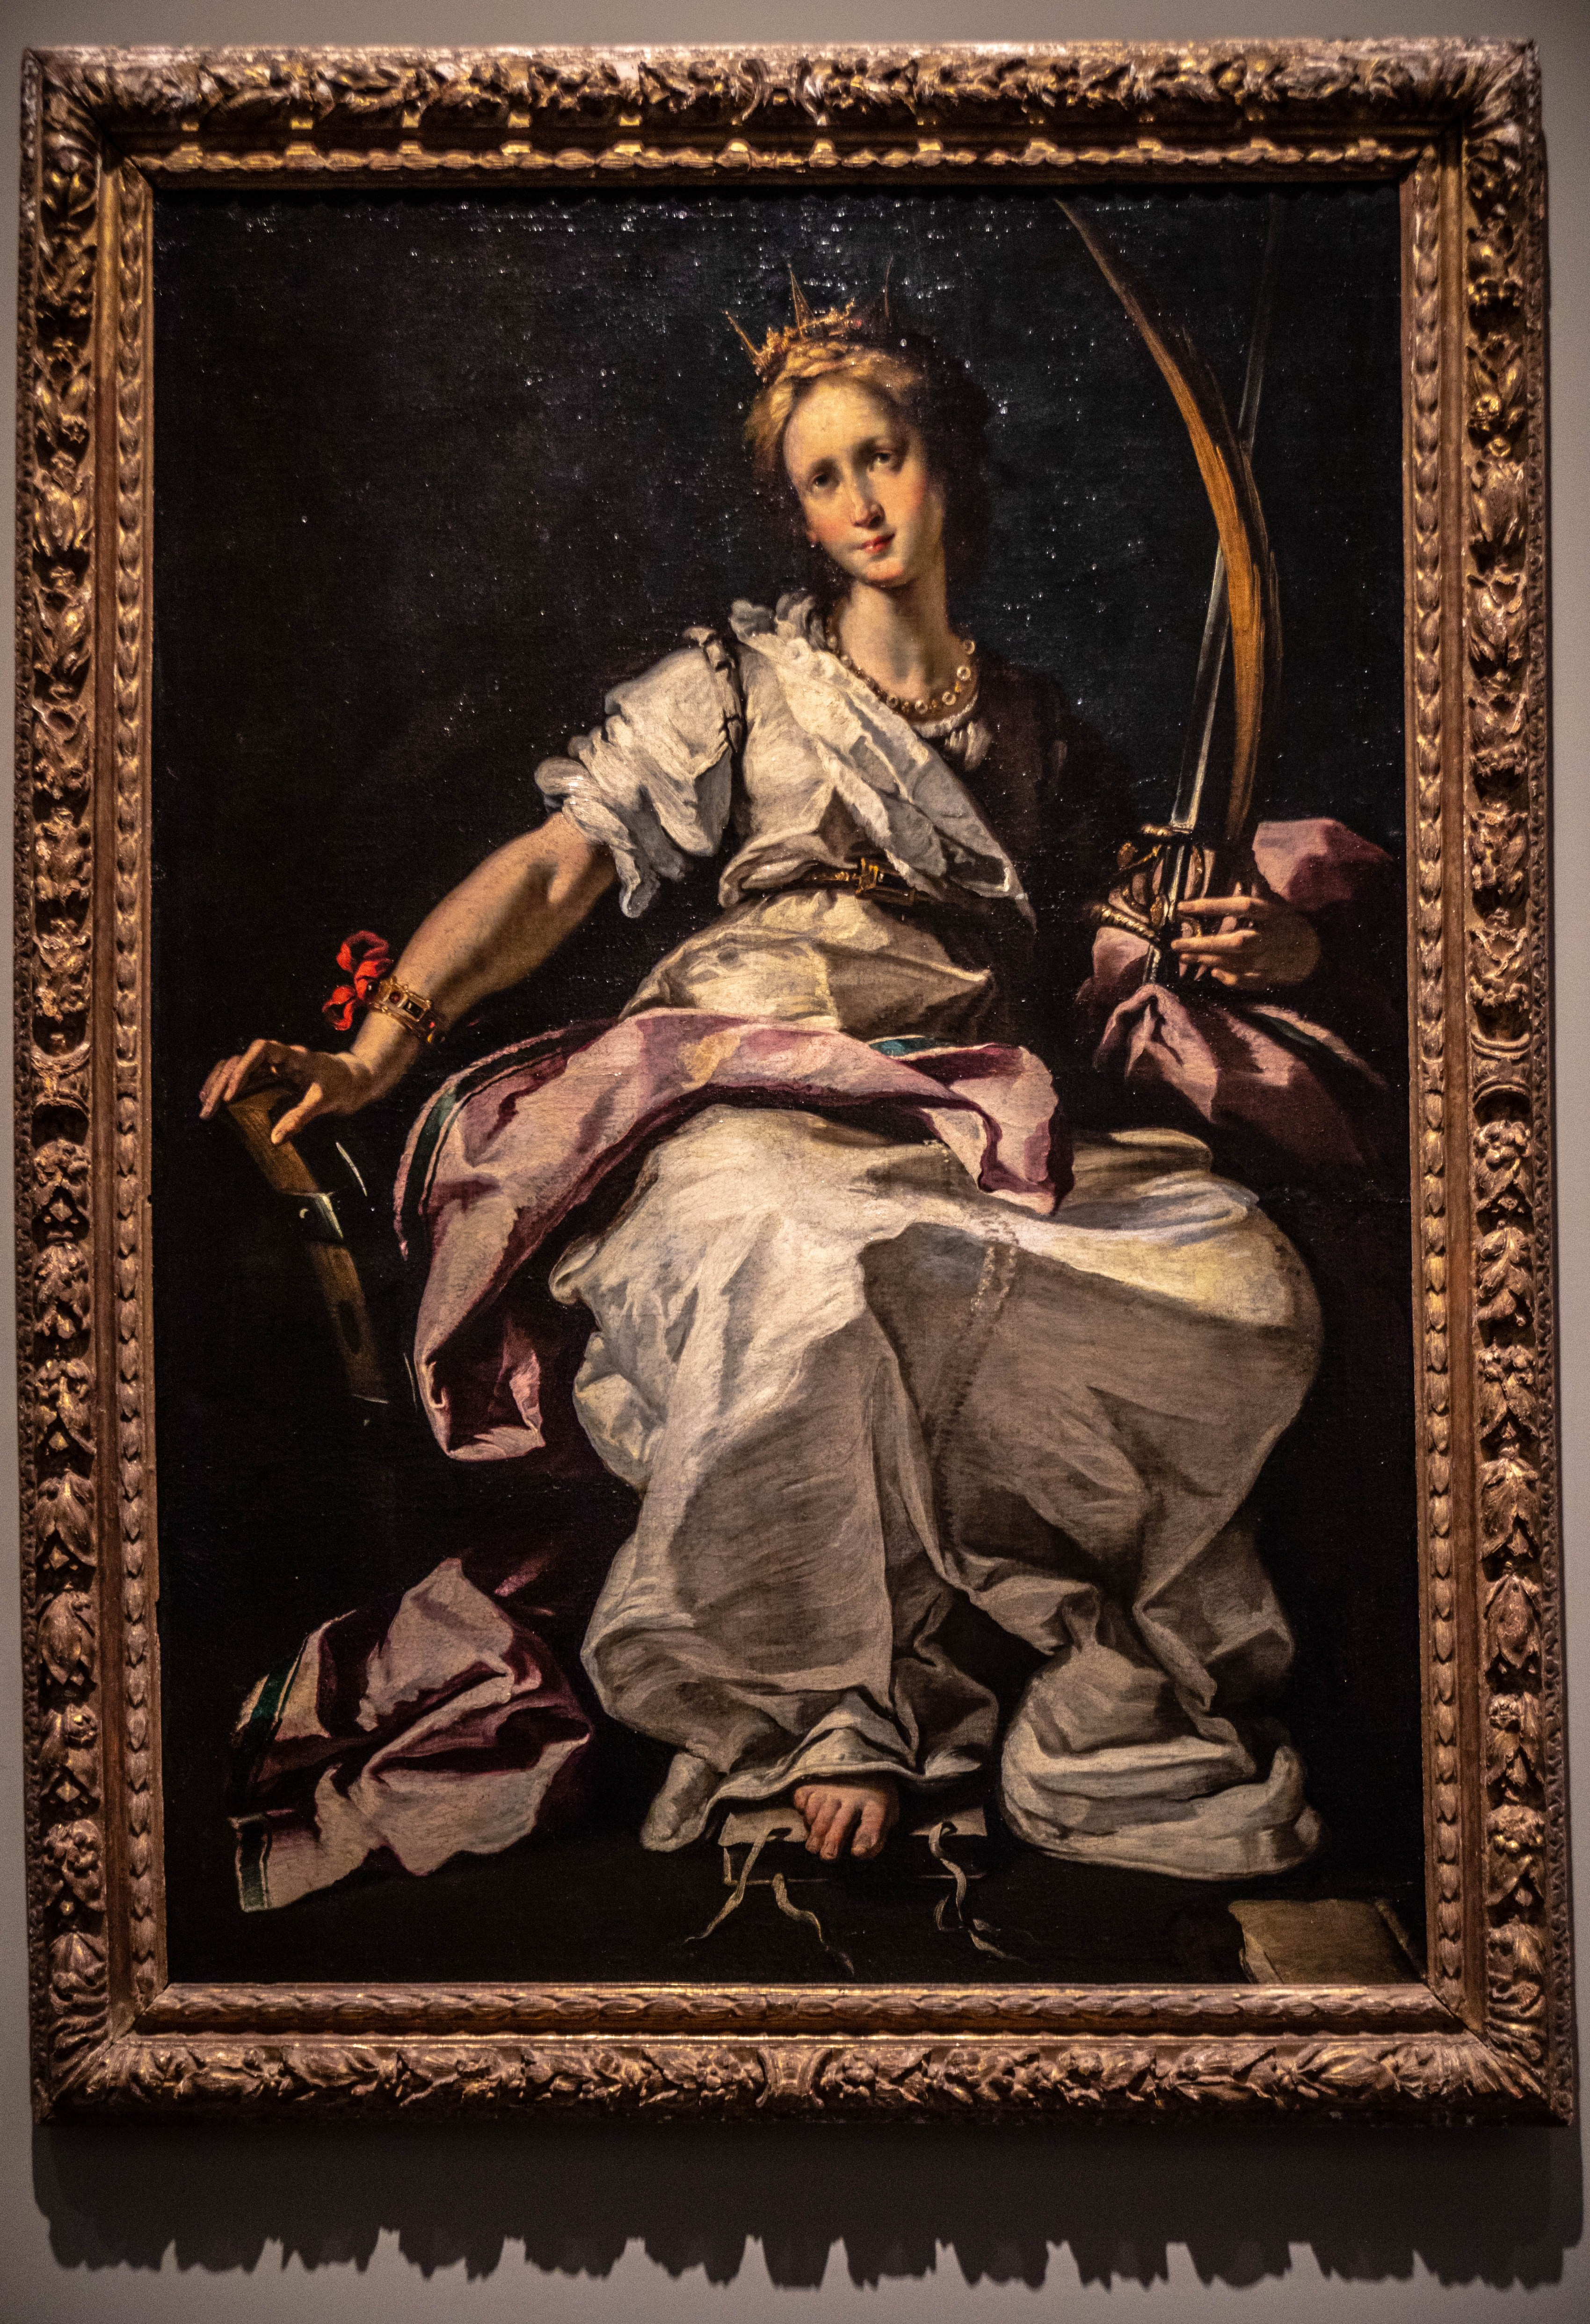 Painting of a Woman at LACMA Los Angeles County Museum of Art